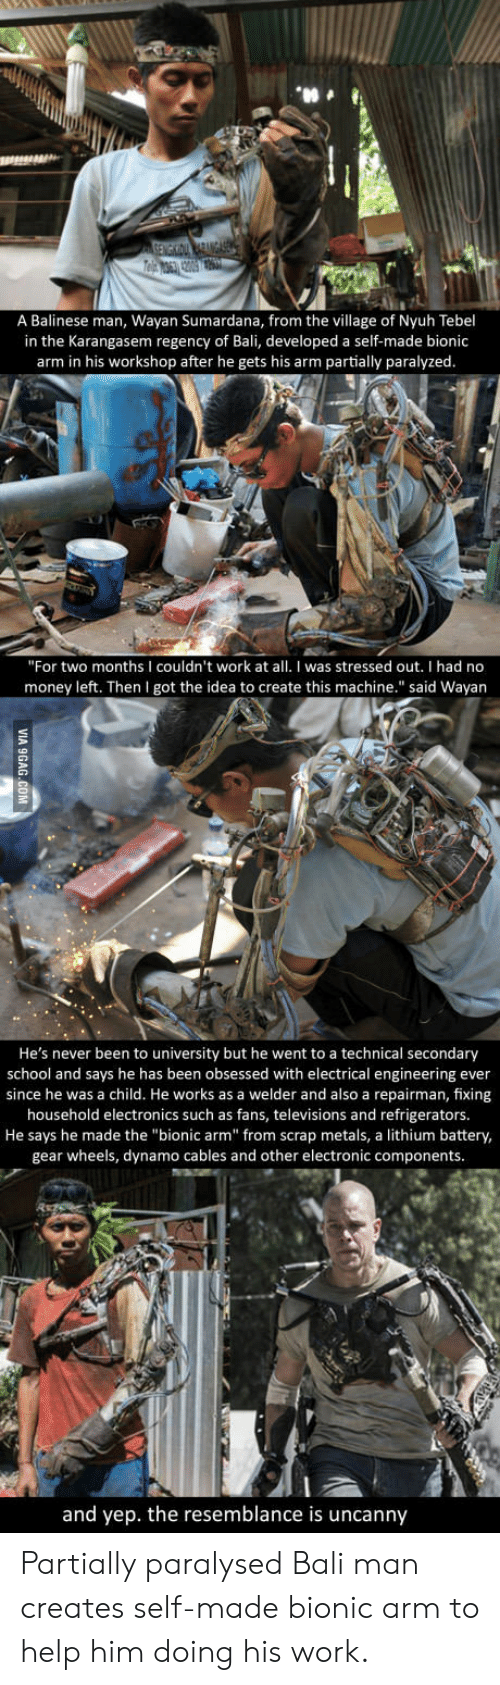 """the resemblance is uncanny: A Balinese man, Wayan Sumardana, from the village of Nyuh Tebel  in the Karangasem regency of Bali, developed a self-made bionic  arm in his workshop after he gets his arm partially paralyzed.  """"For two months I couldn't work at all. I was stressed out. I had no  money left. Then I got the idea to create this machine."""" said Wayan  He's never been to university but he went to a technical secondary  school and says he has been obsessed with electrical engineering ever  since he was a child. He works as a welder and also a repairman, fixing  household electronics such as fans, televisions and refrigerators.  He says he made the """"bionic arm"""" from scrap metals, a lithium battery,  gear wheels, dynamo cables and other electronic components.  3  and yep. the resemblance is uncanny Partially paralysed Bali man creates self-made bionic arm to help him doing his work."""